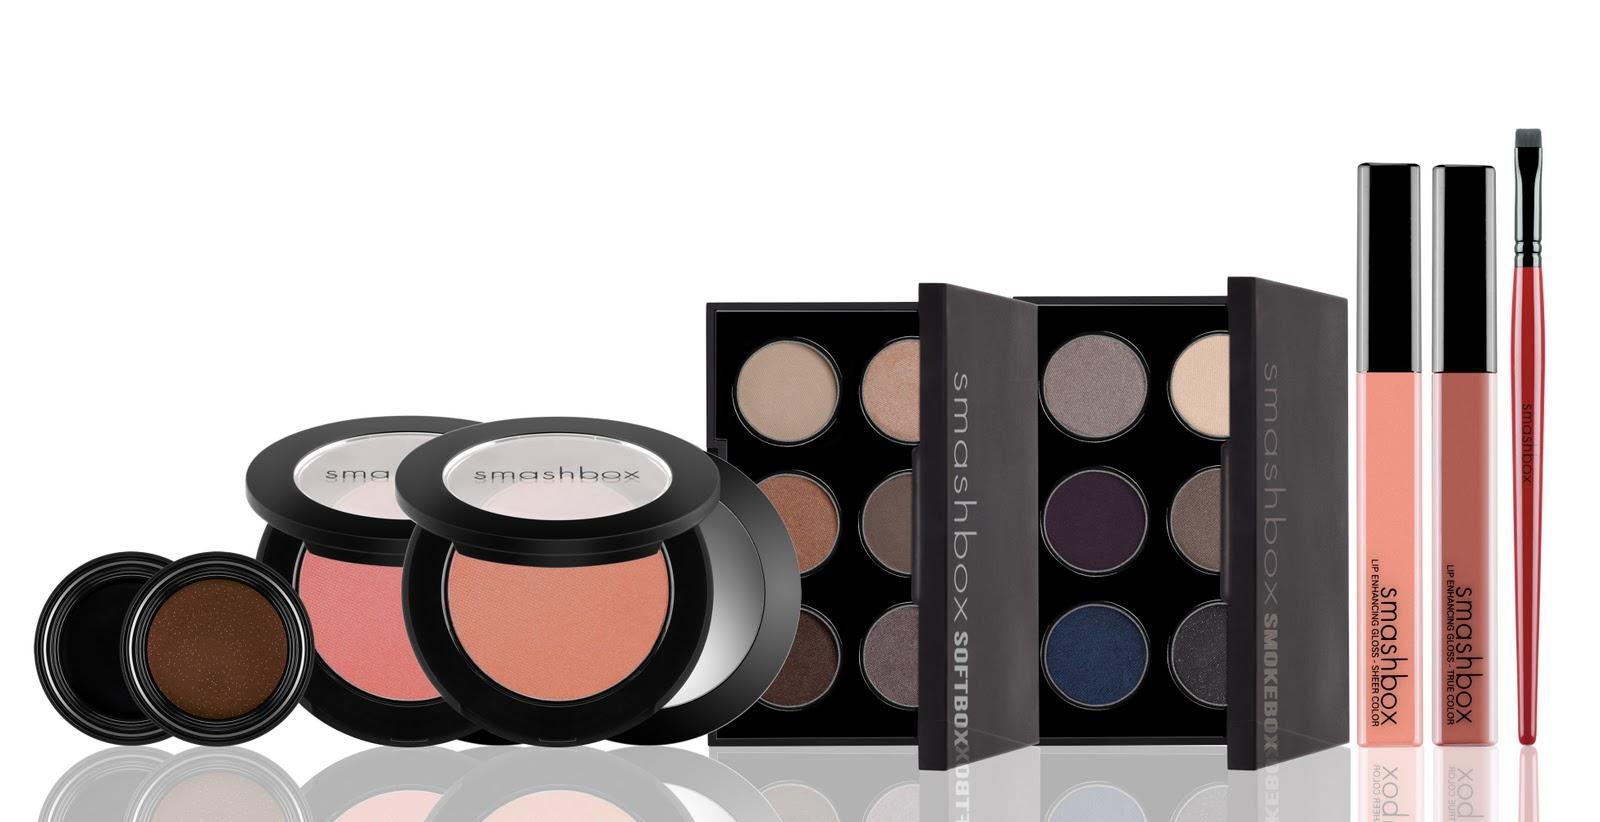 Free 6-piece Try-me Kit With Purchase Over $40 @ Smashbox Cosmetics